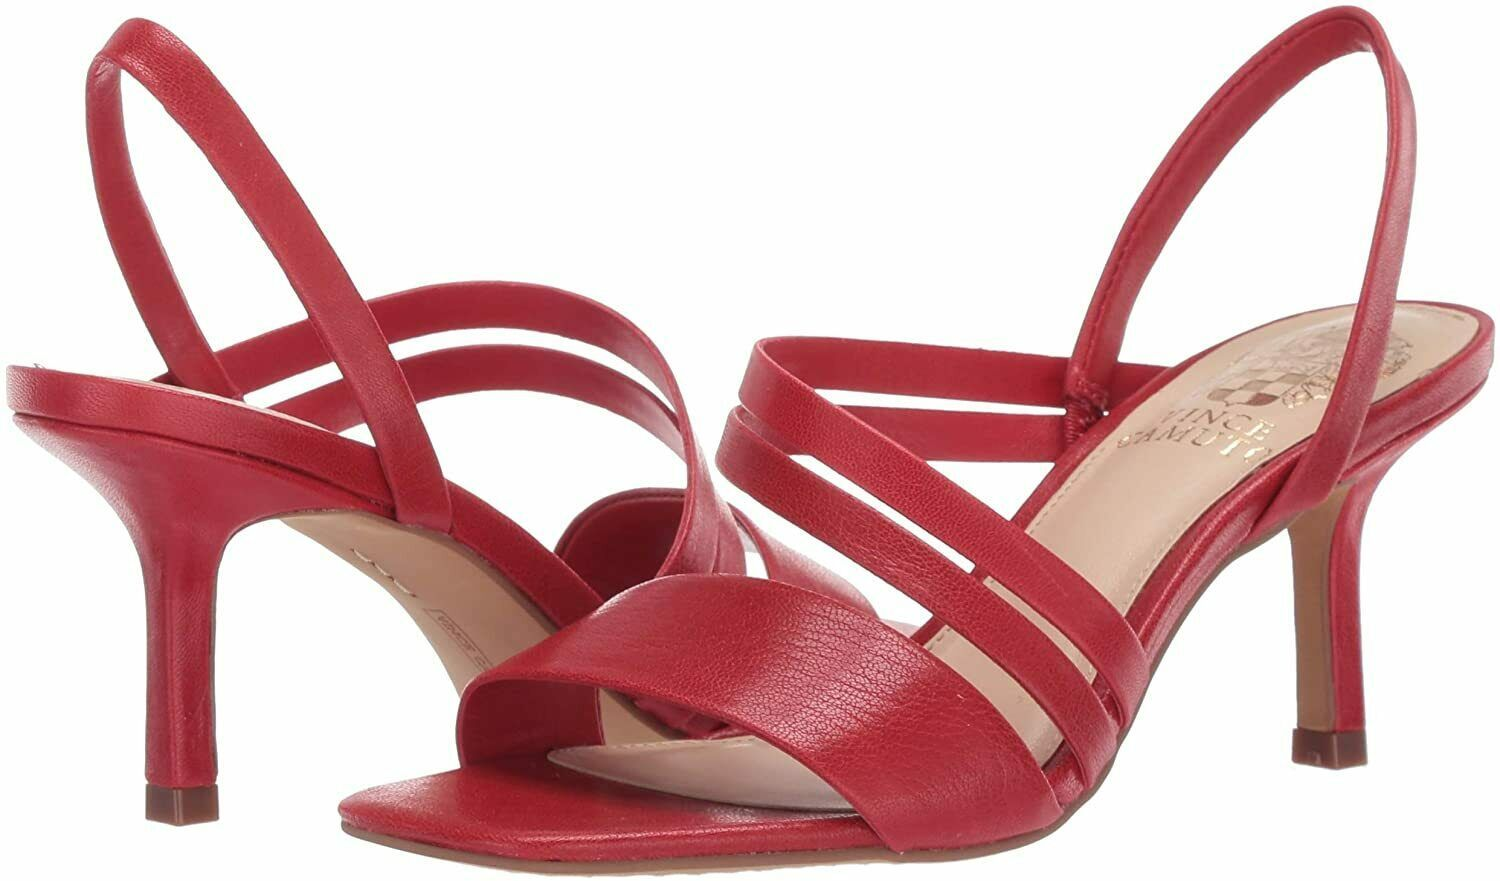 Primary image for Vince Camuto Savesha Multi Strap Leather Slingblack Sandals, Multiple Sizes Red